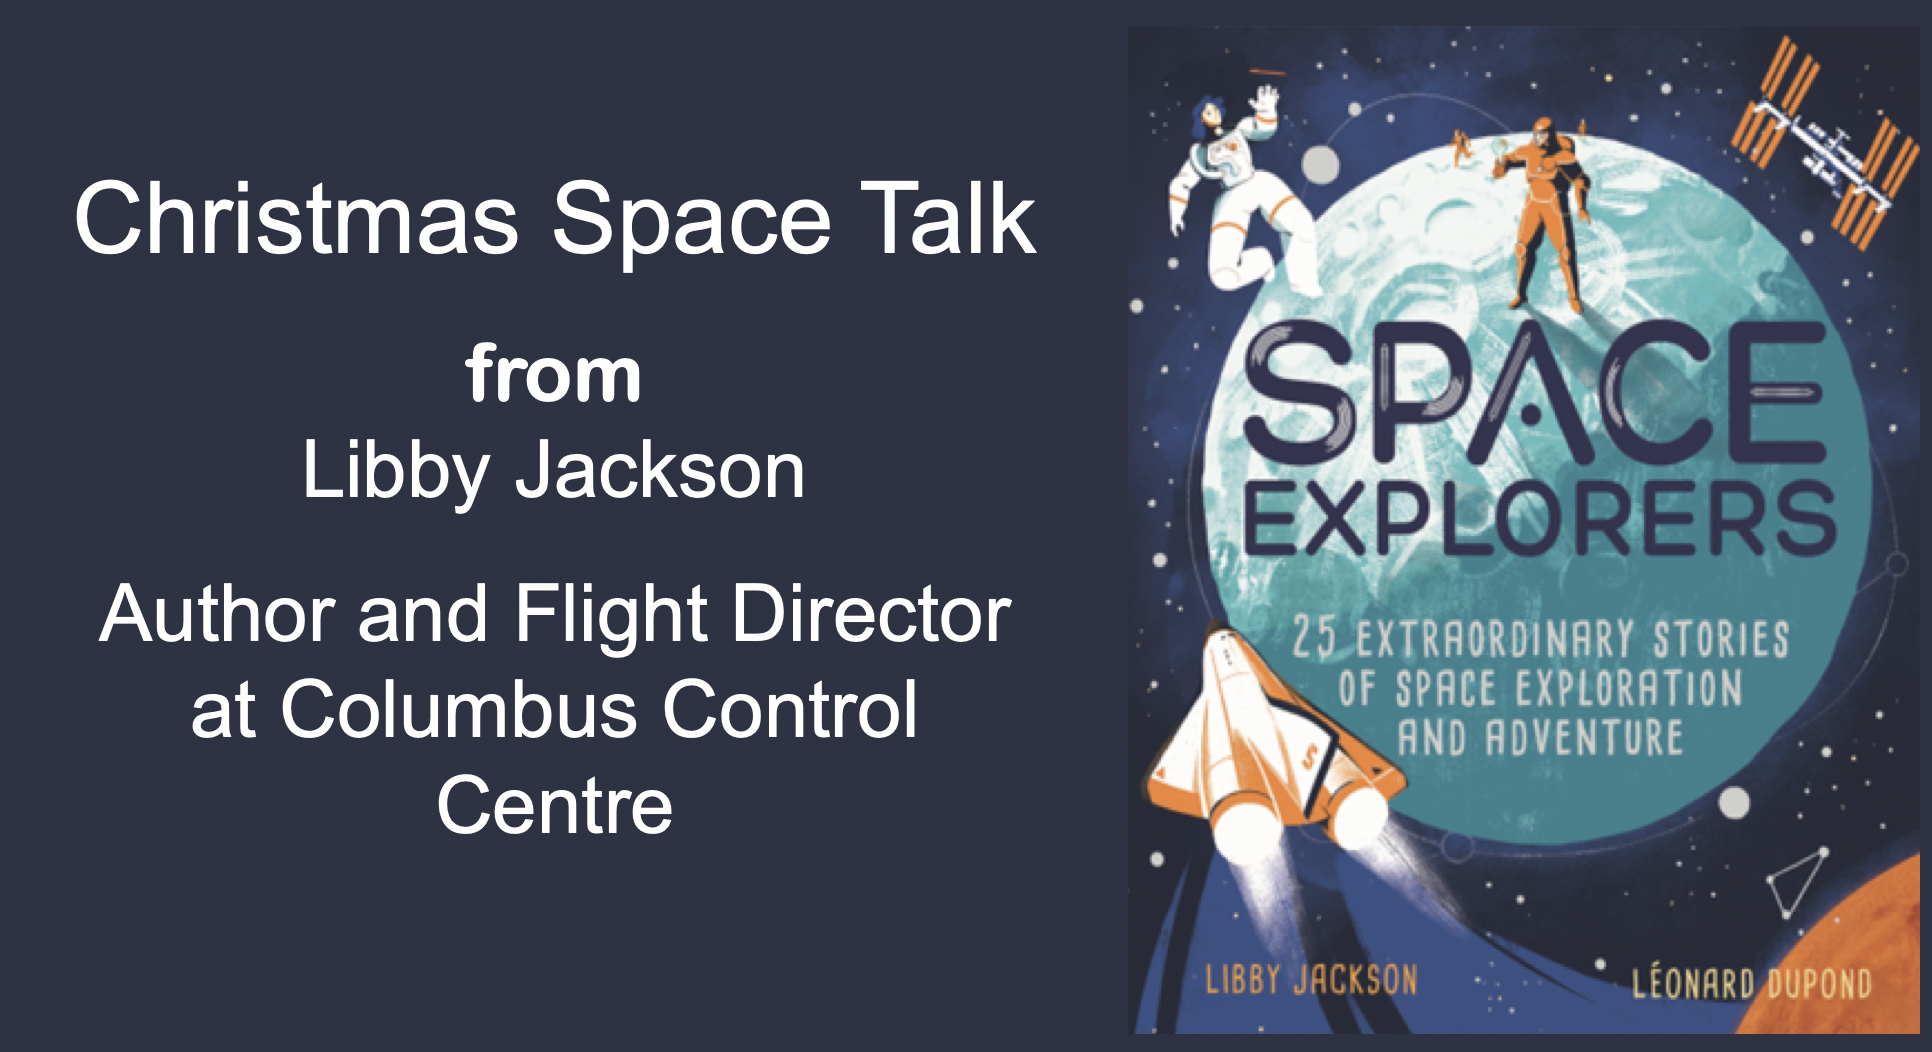 Primary Christmas Space Talk with Libby Jackson